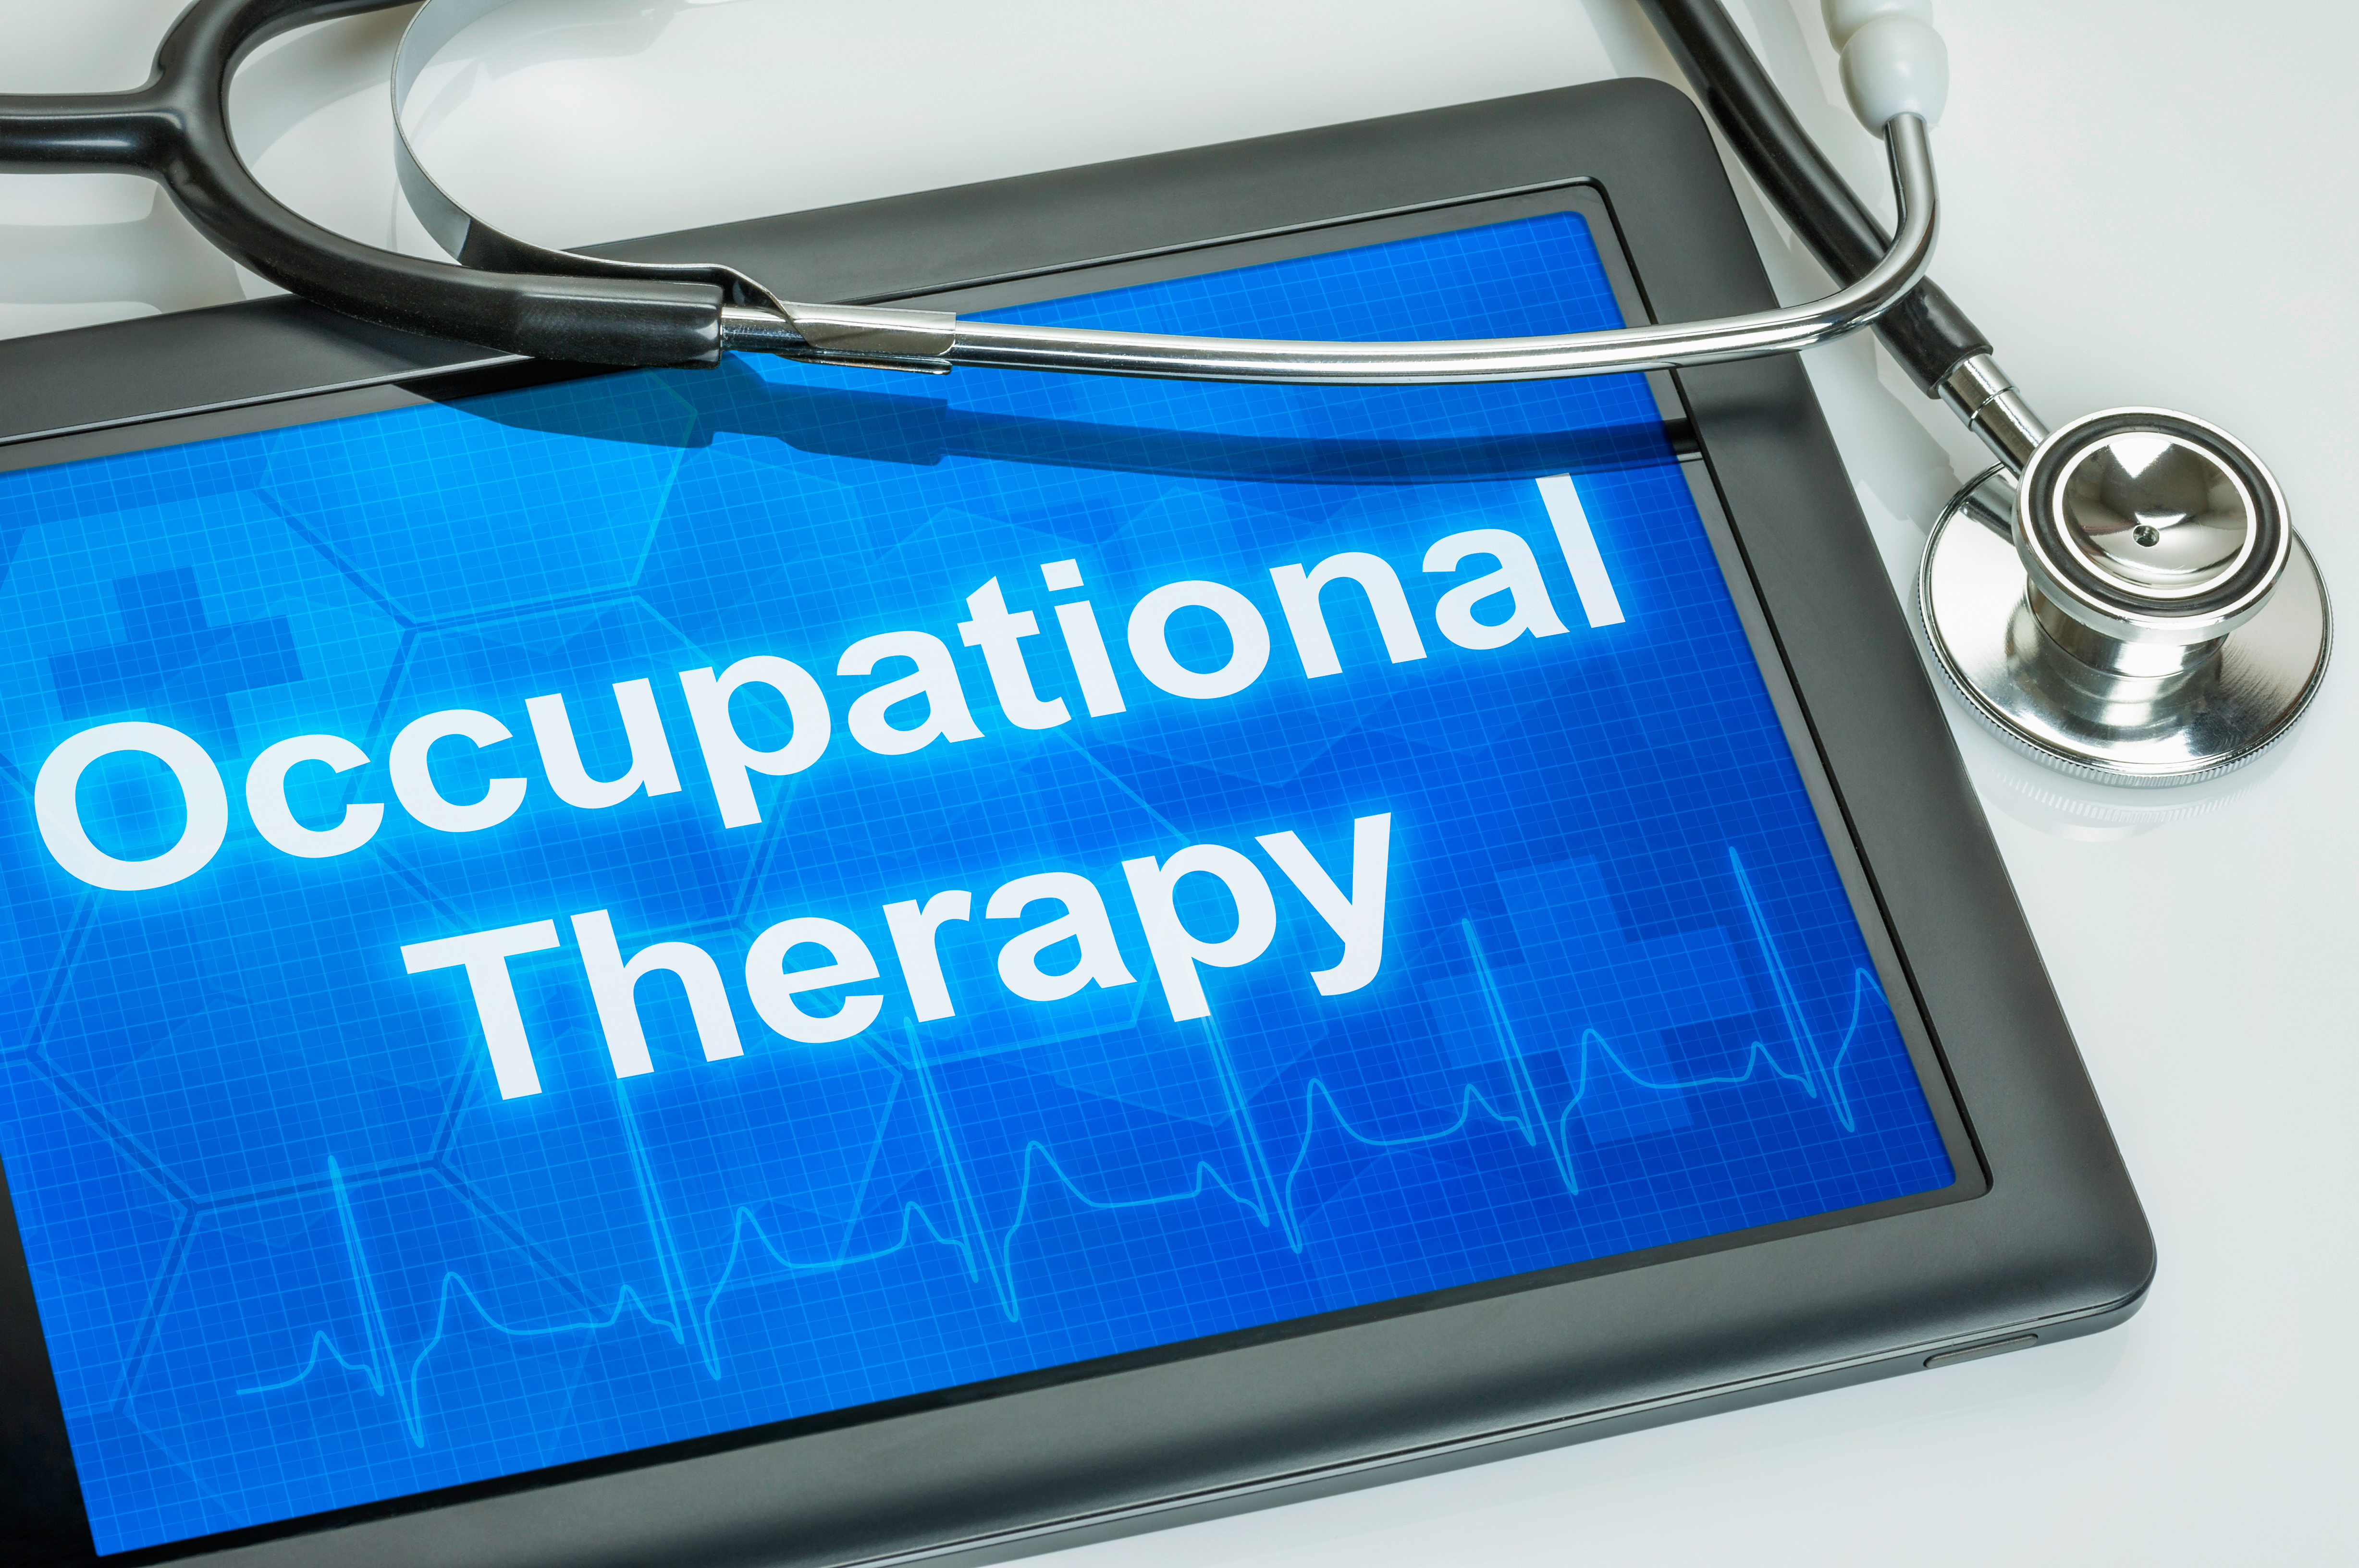 Tablet with the text Occupational Therapy on thedisplay